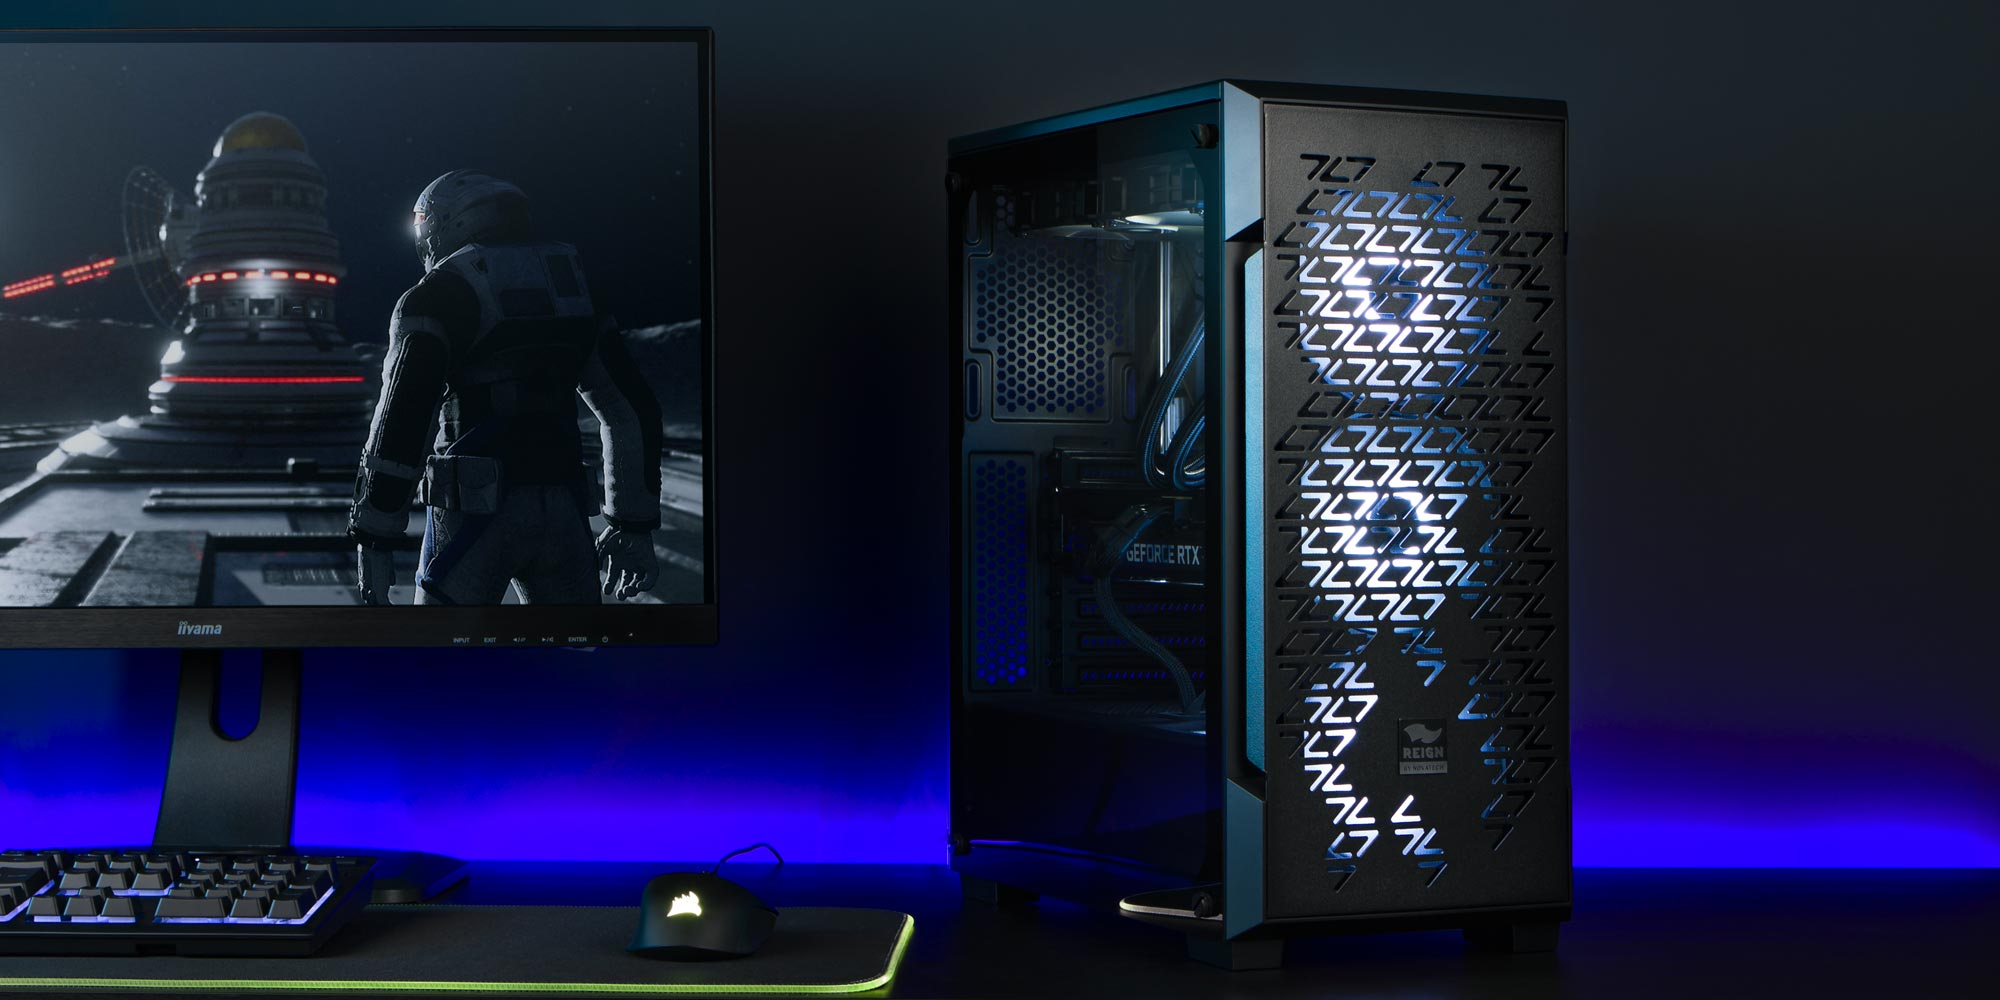 Reign Sentry gaming PCs by Novatech